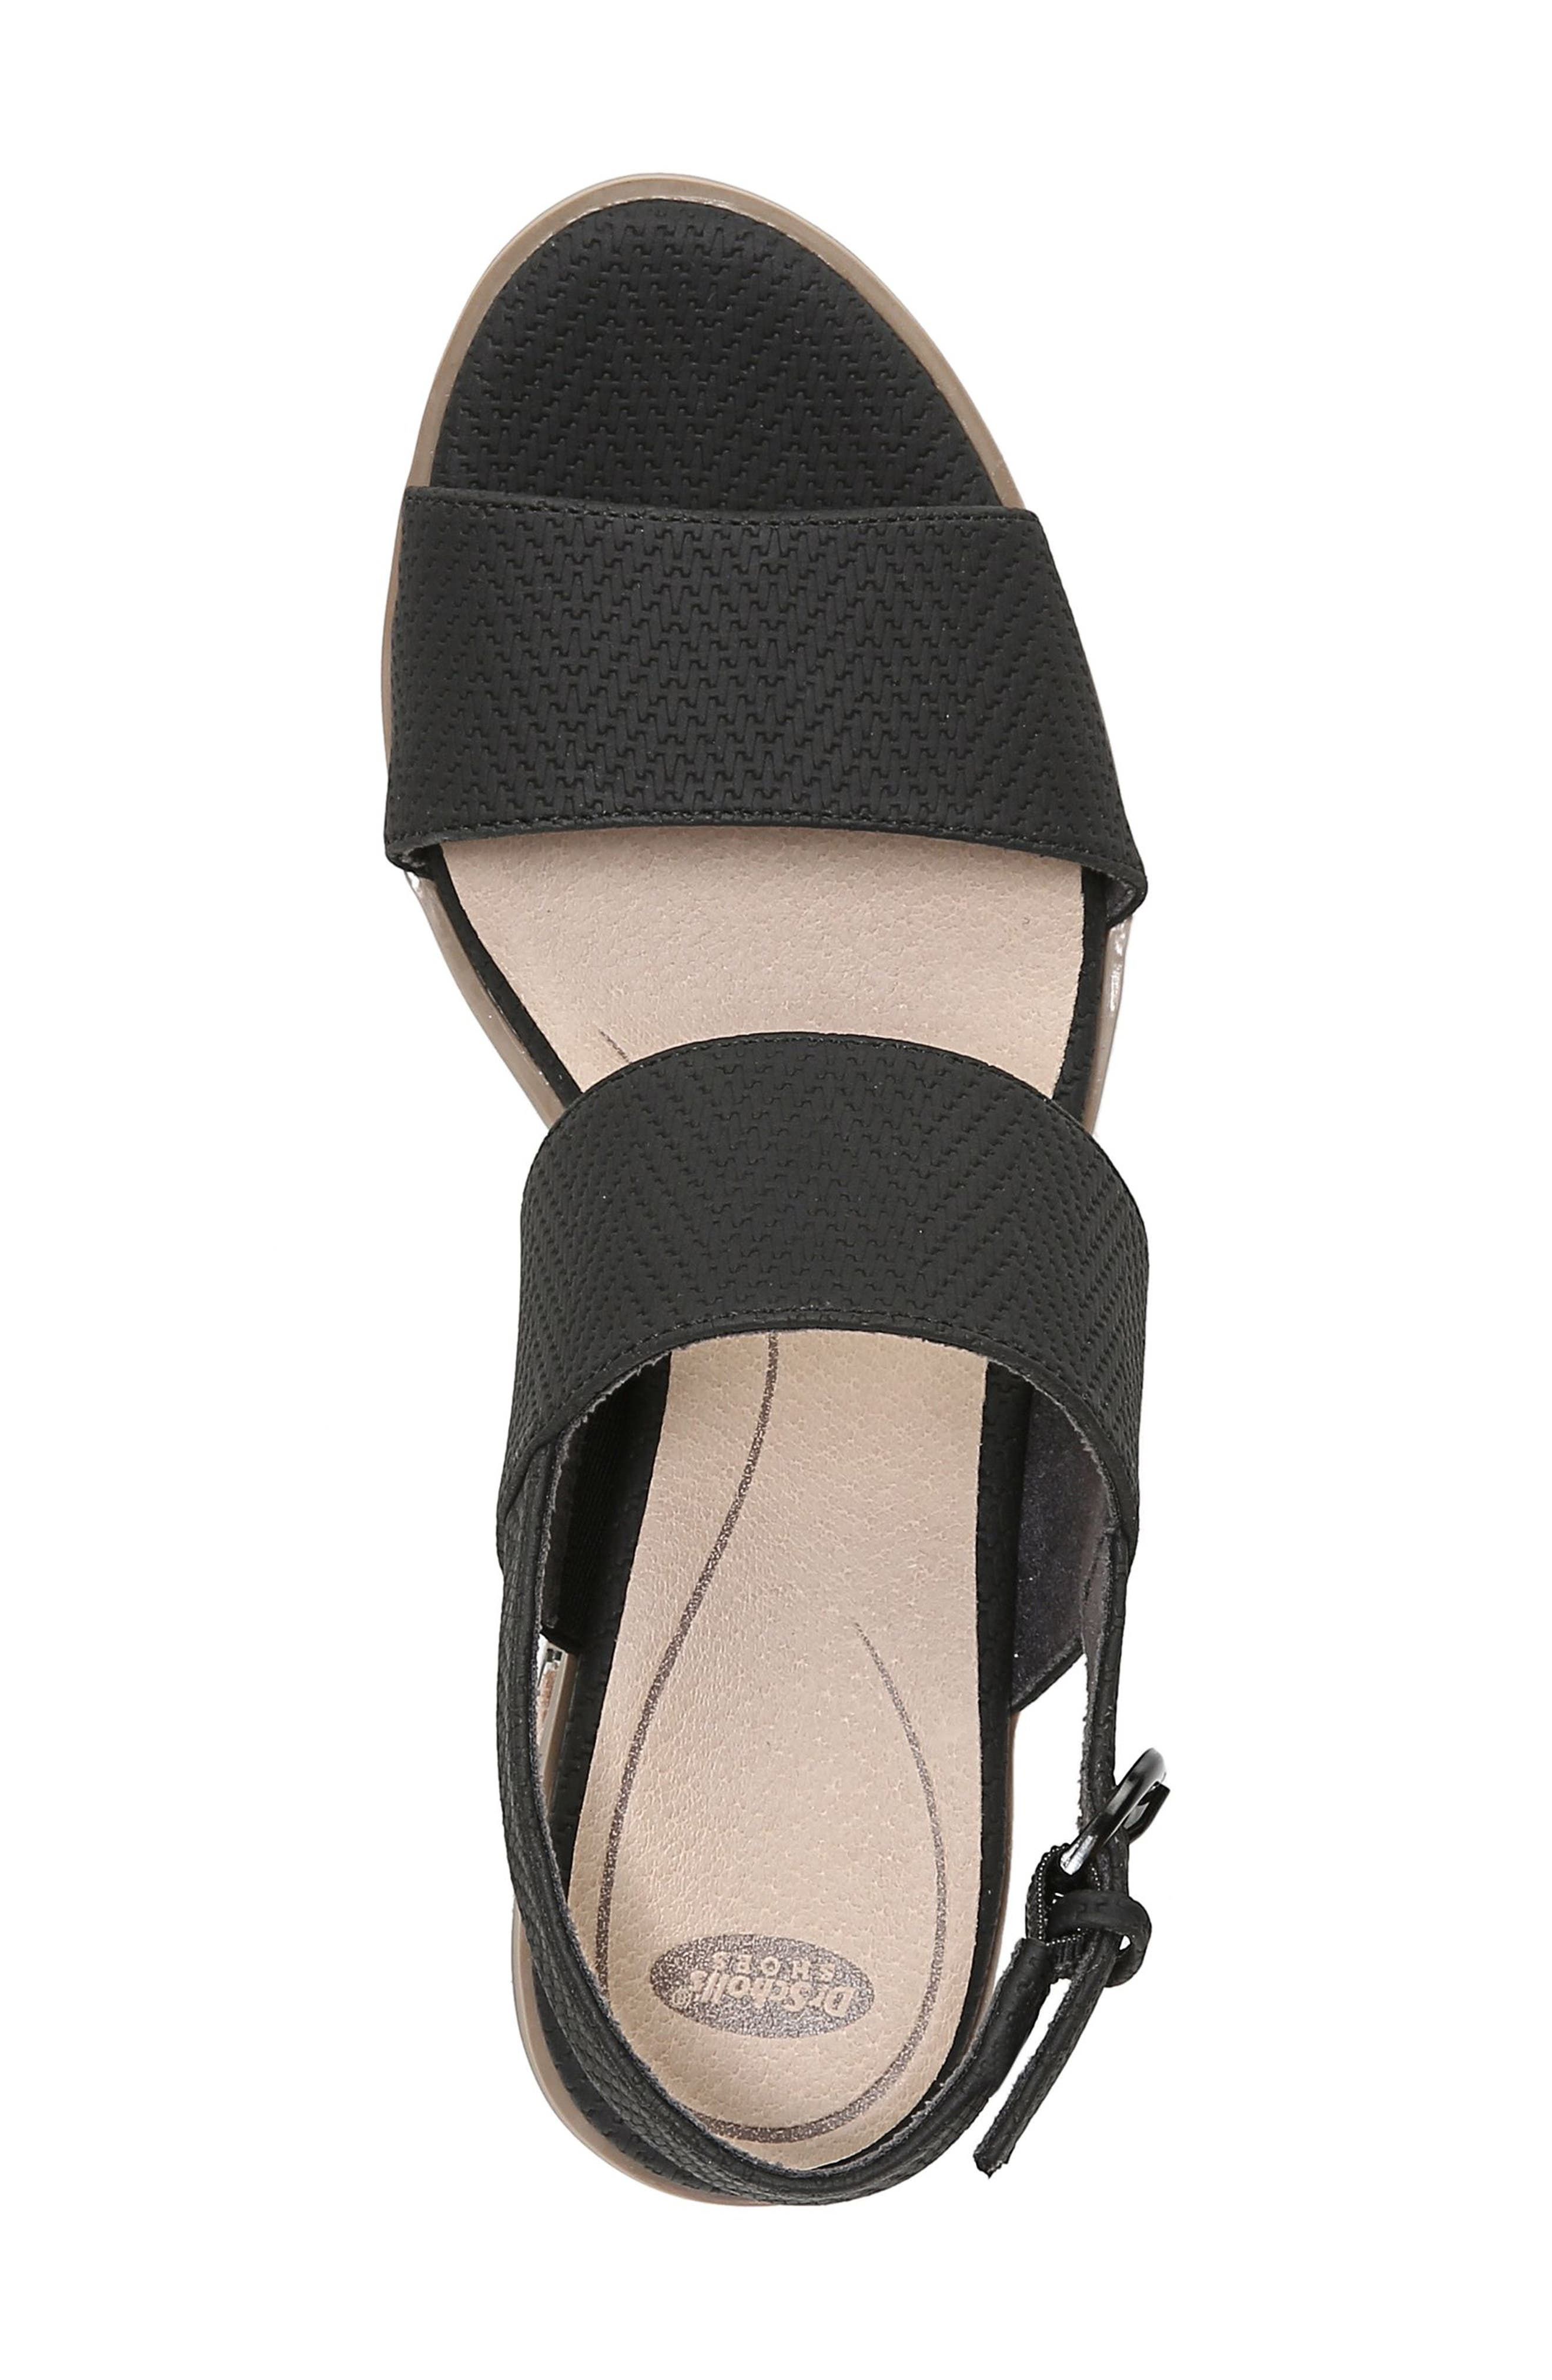 Sure Thing Sandal,                             Alternate thumbnail 5, color,                             BLACK FAUX LEATHER